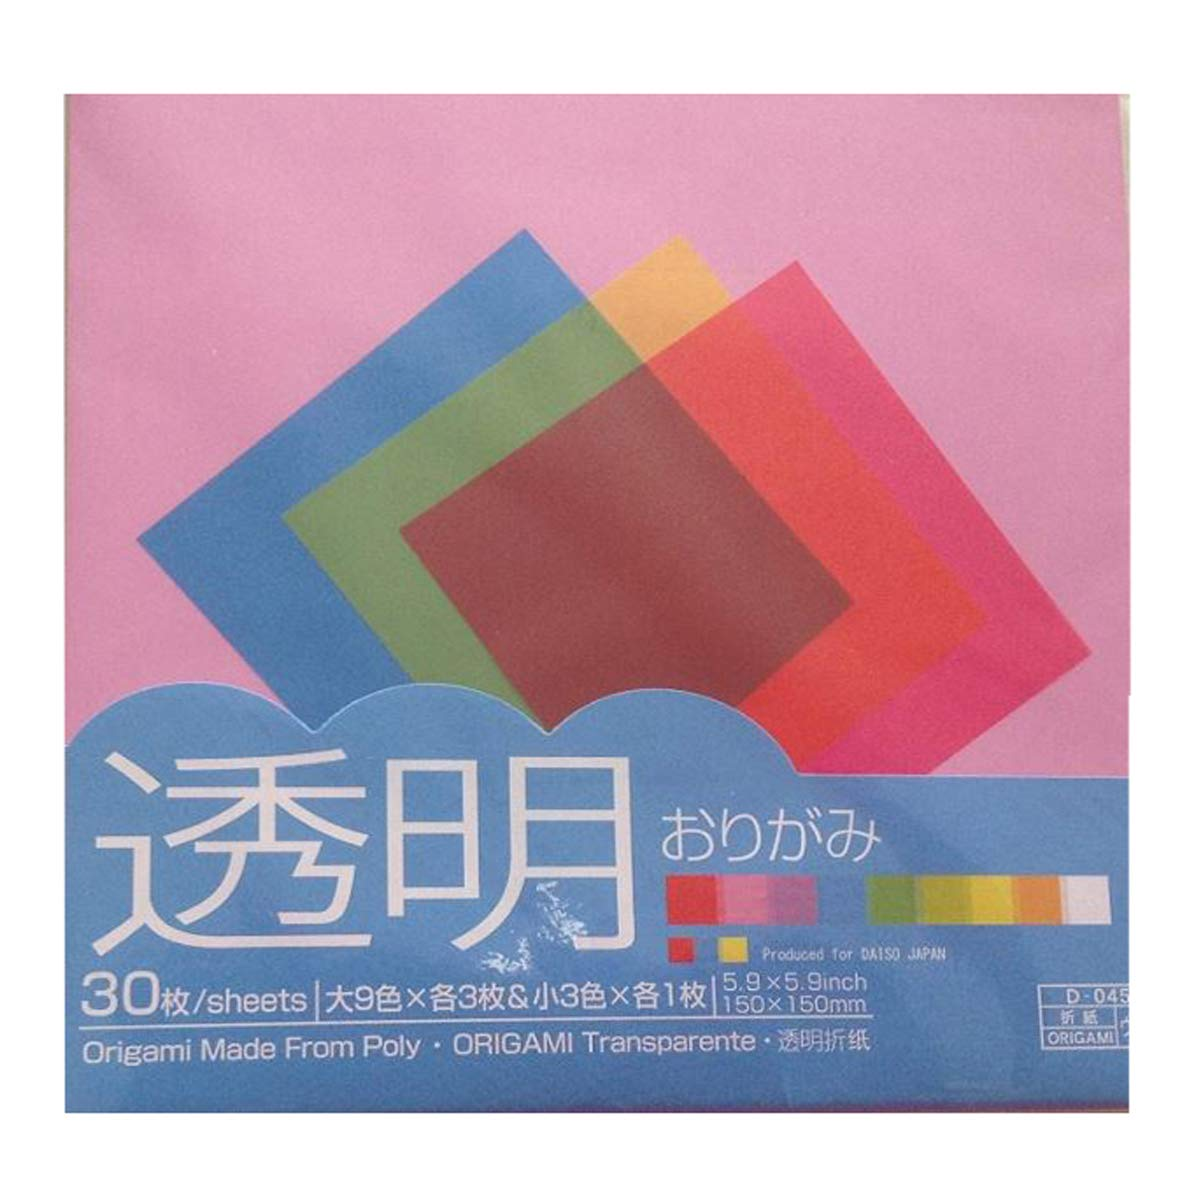 30 Sheets Origami 'Paper' Made From Poly (Transparent) by Daiso